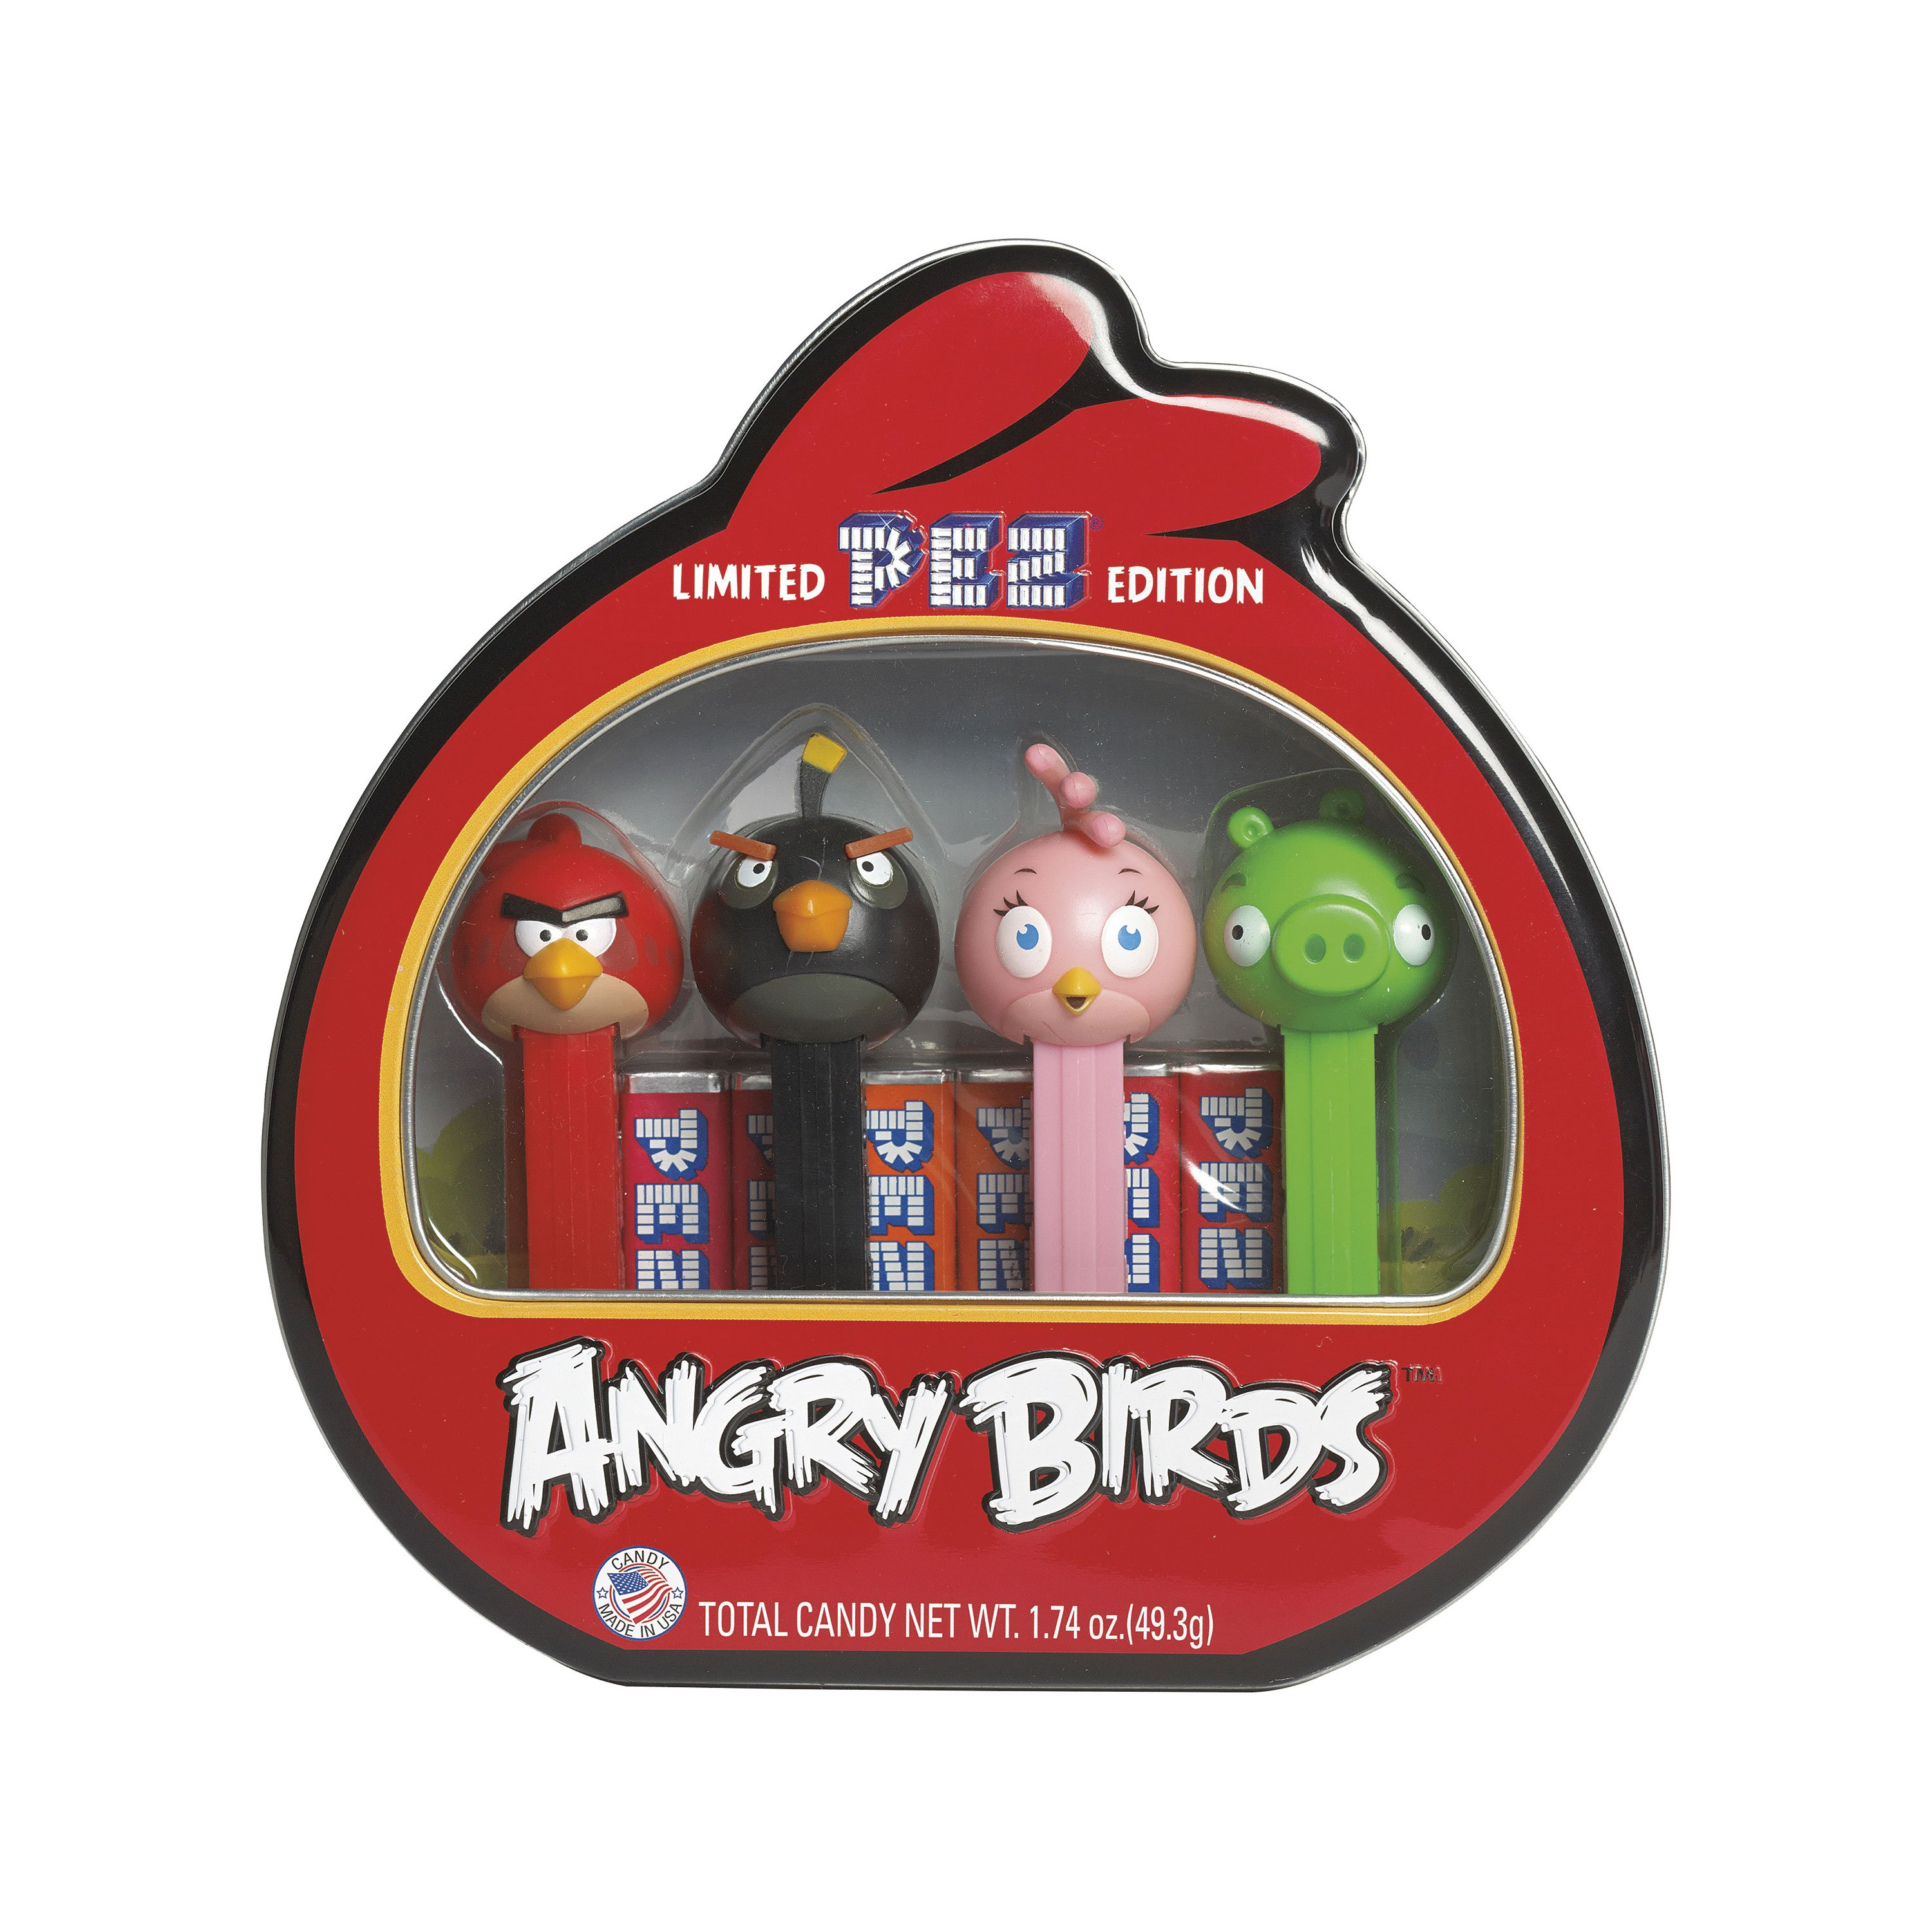 PEZ Candy Angry Birds Gift Tin with 4 Candy Dispensers + 6 Rolls of Candy